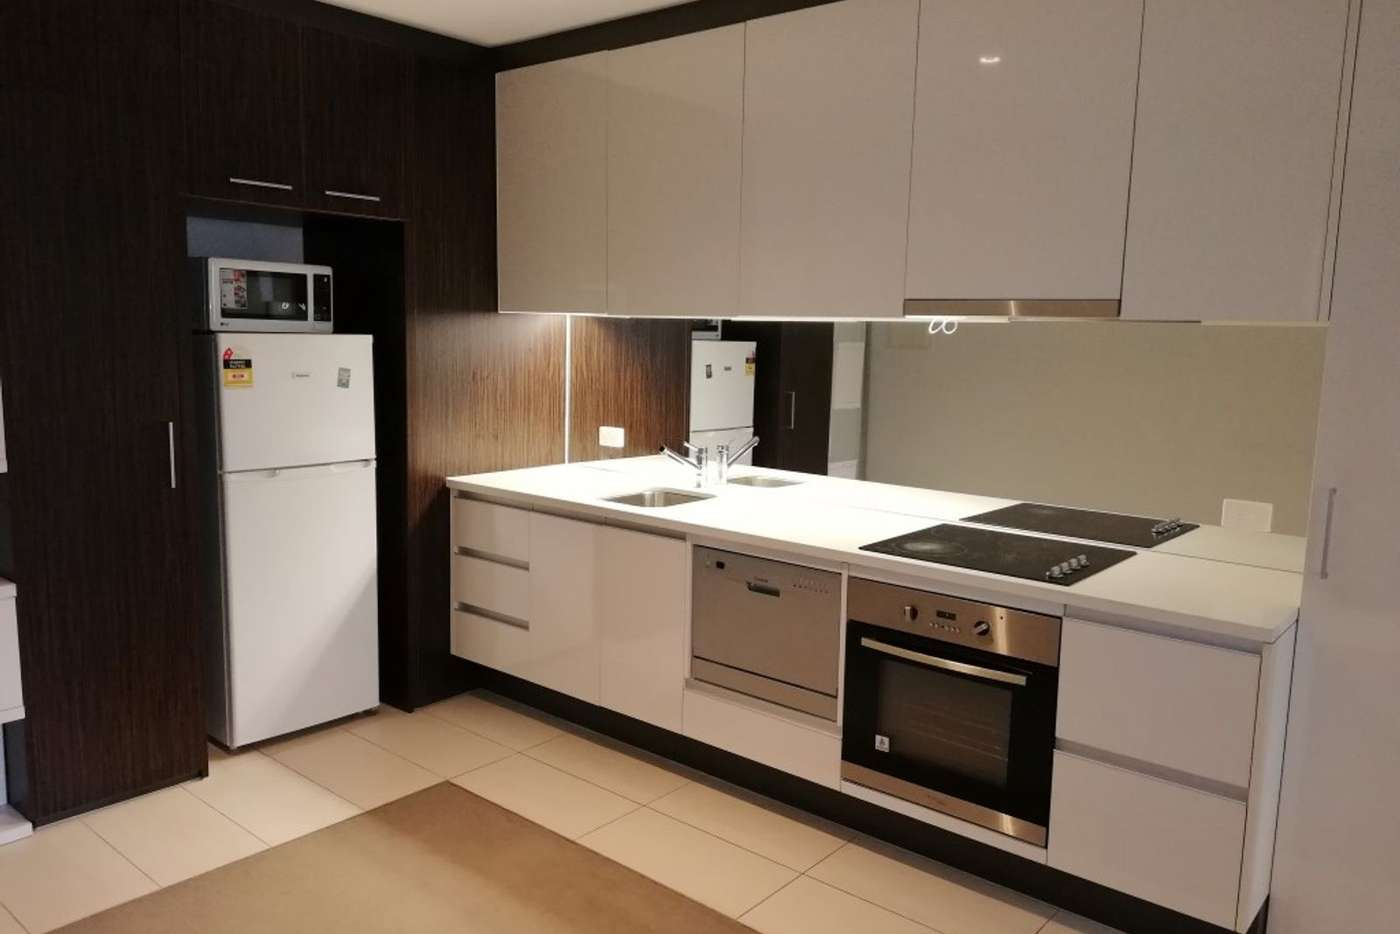 Main view of Homely apartment listing, 804/639 Lonsdale Street, Melbourne VIC 3000